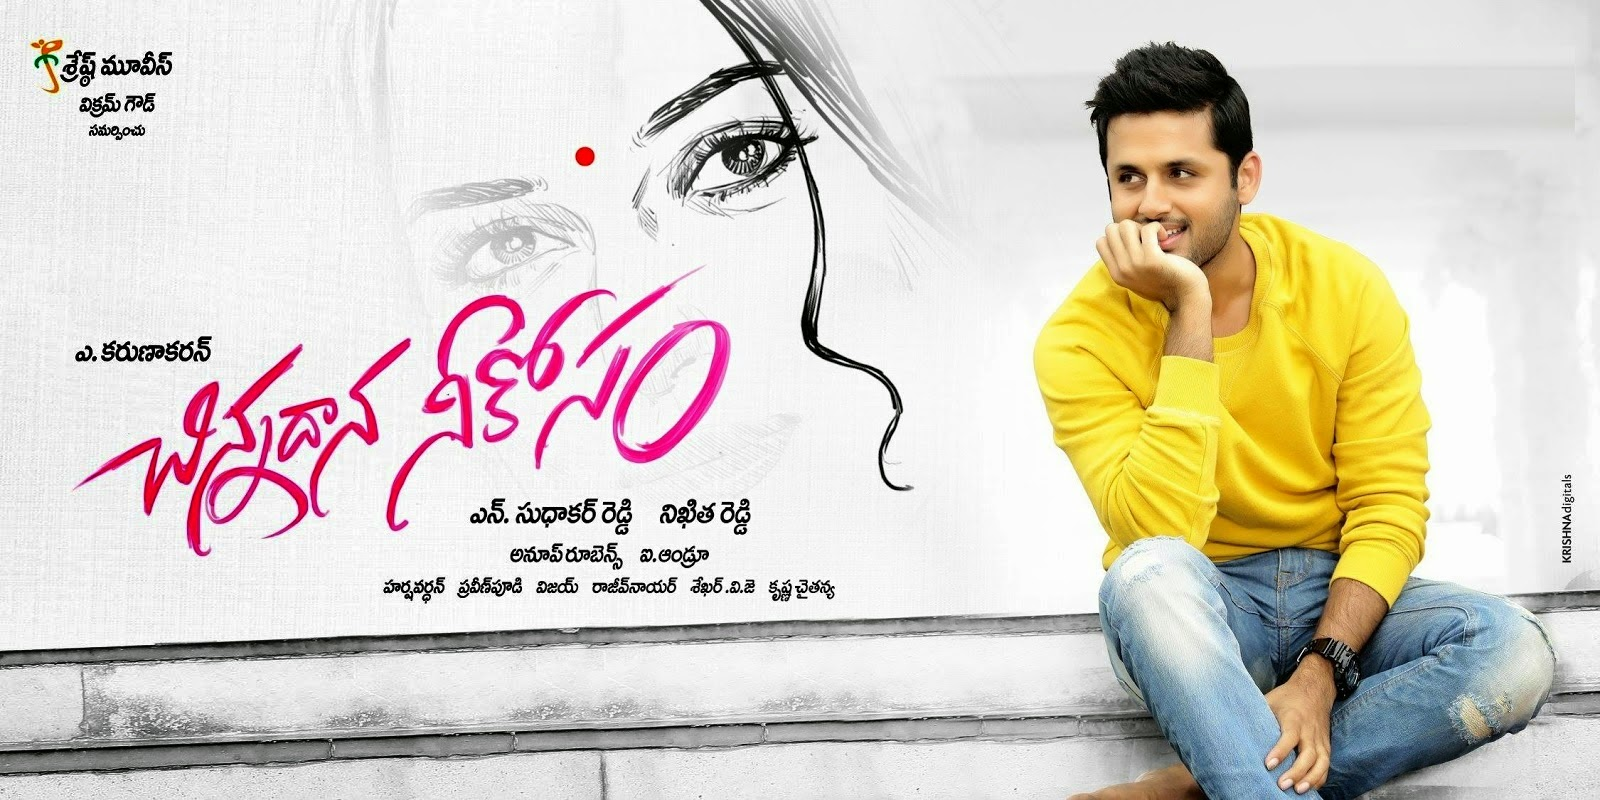 chinnadana neekosam (2014) movie posters - cap